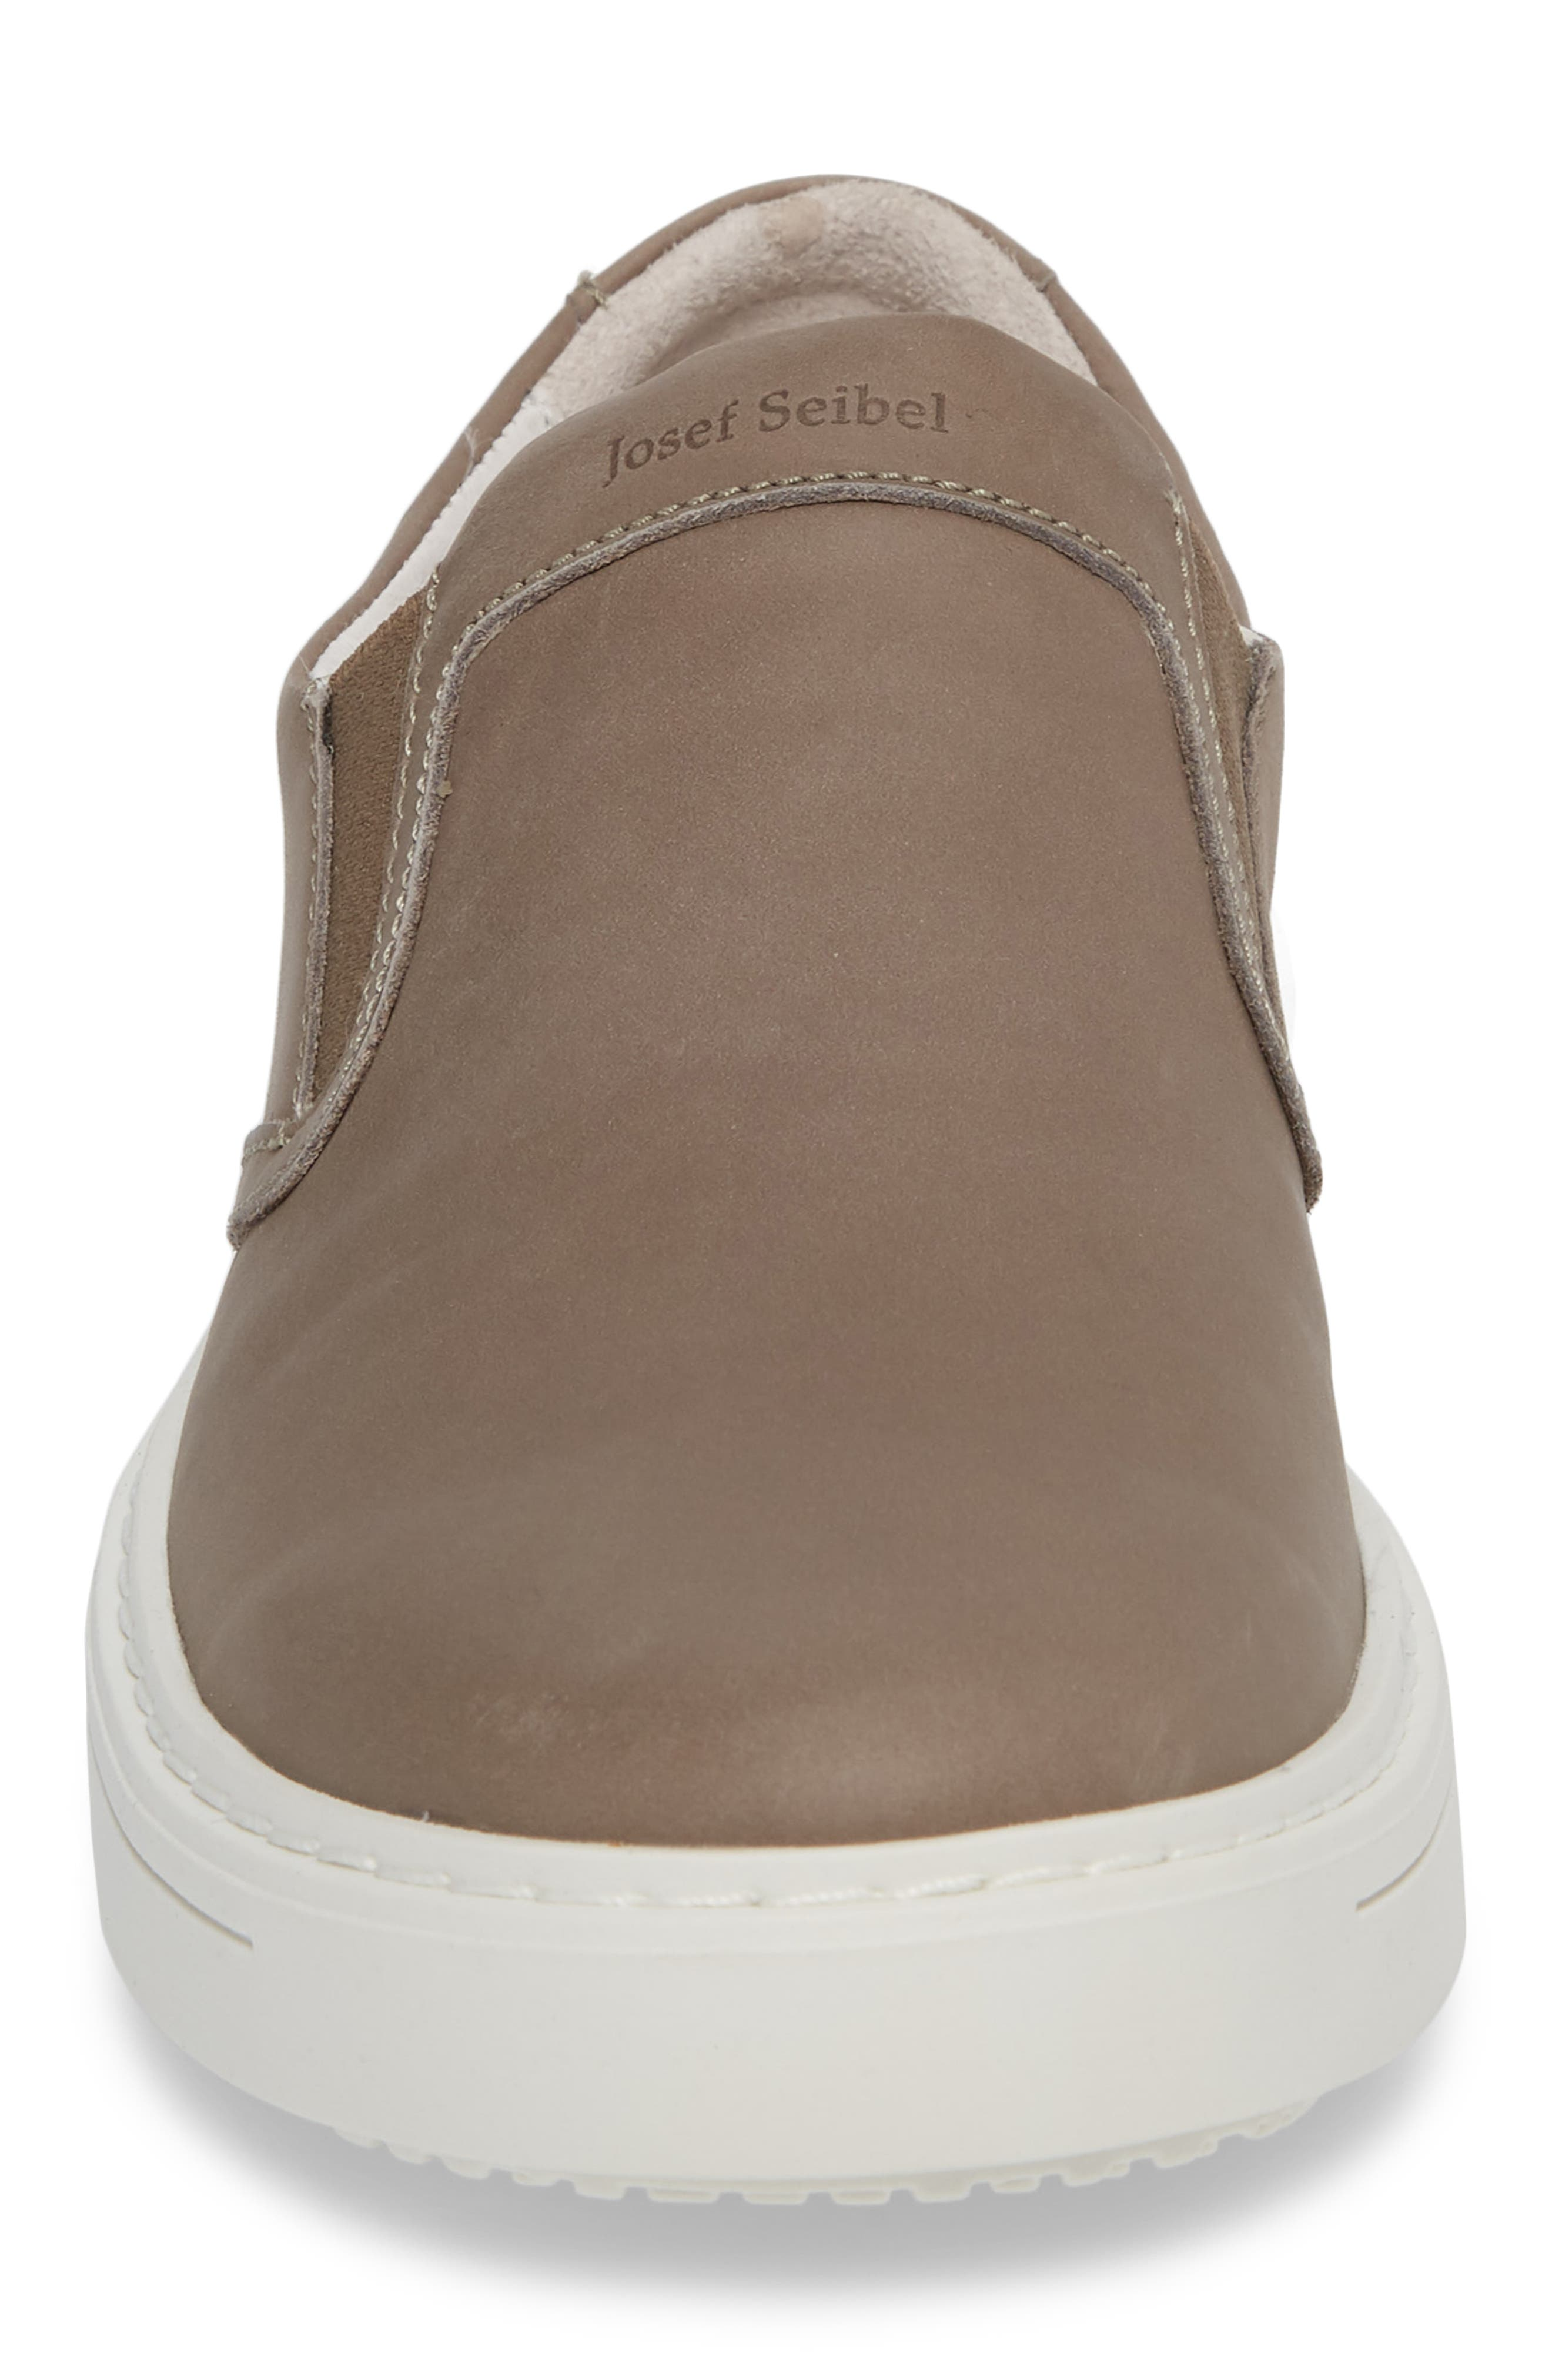 Quentin 15 Slip-On Sneaker,                             Alternate thumbnail 4, color,                             GRAY LEATHER